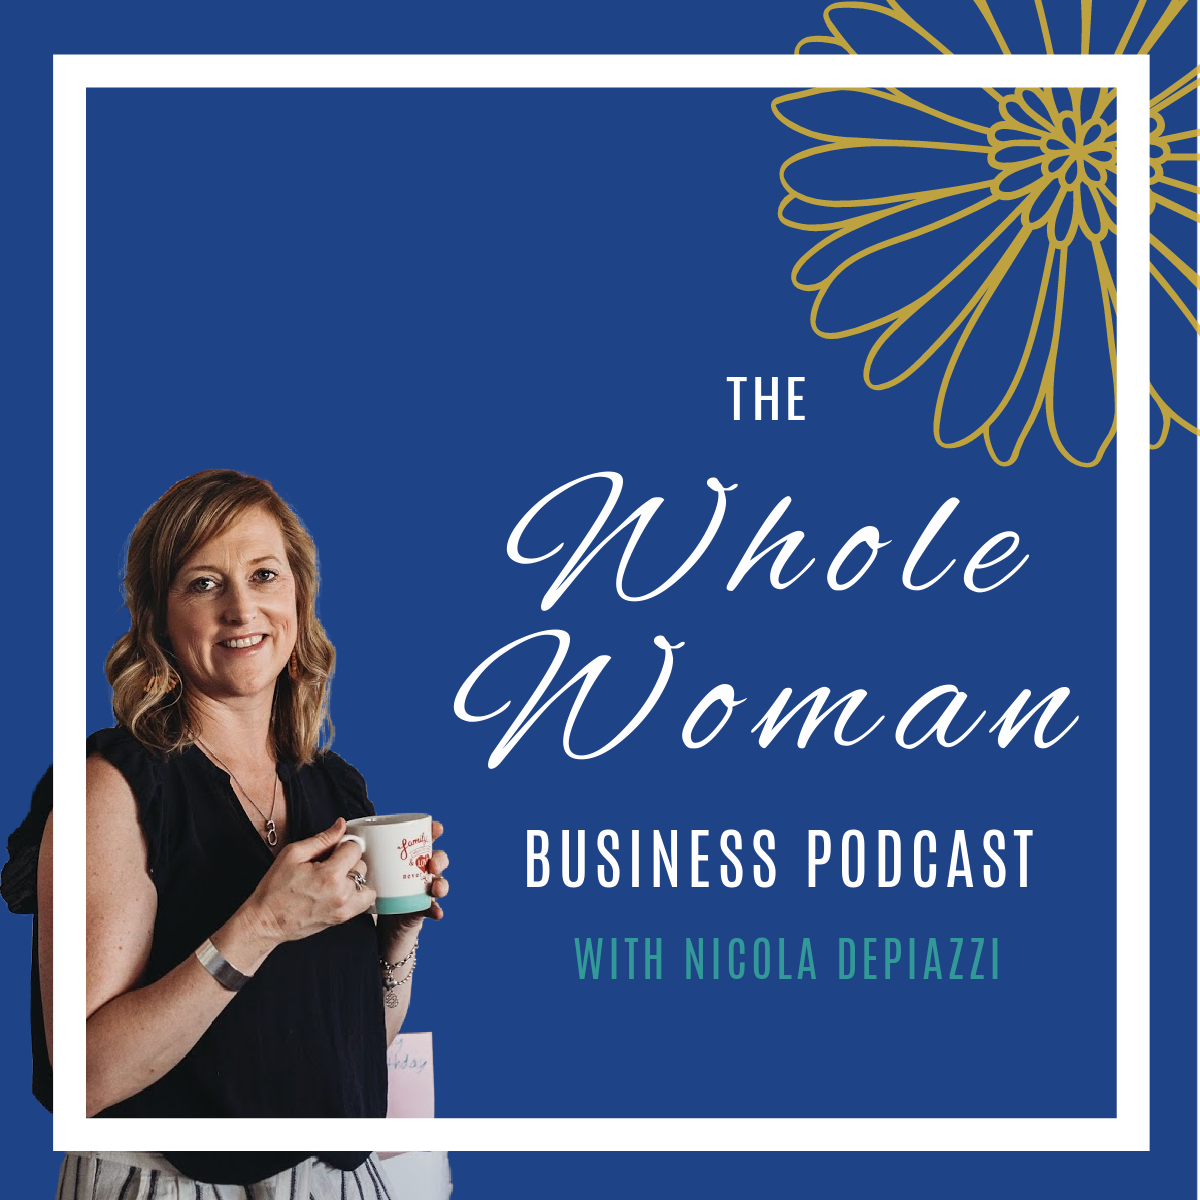 The Whole Woman Business Podcast with Nicola Depiazzi